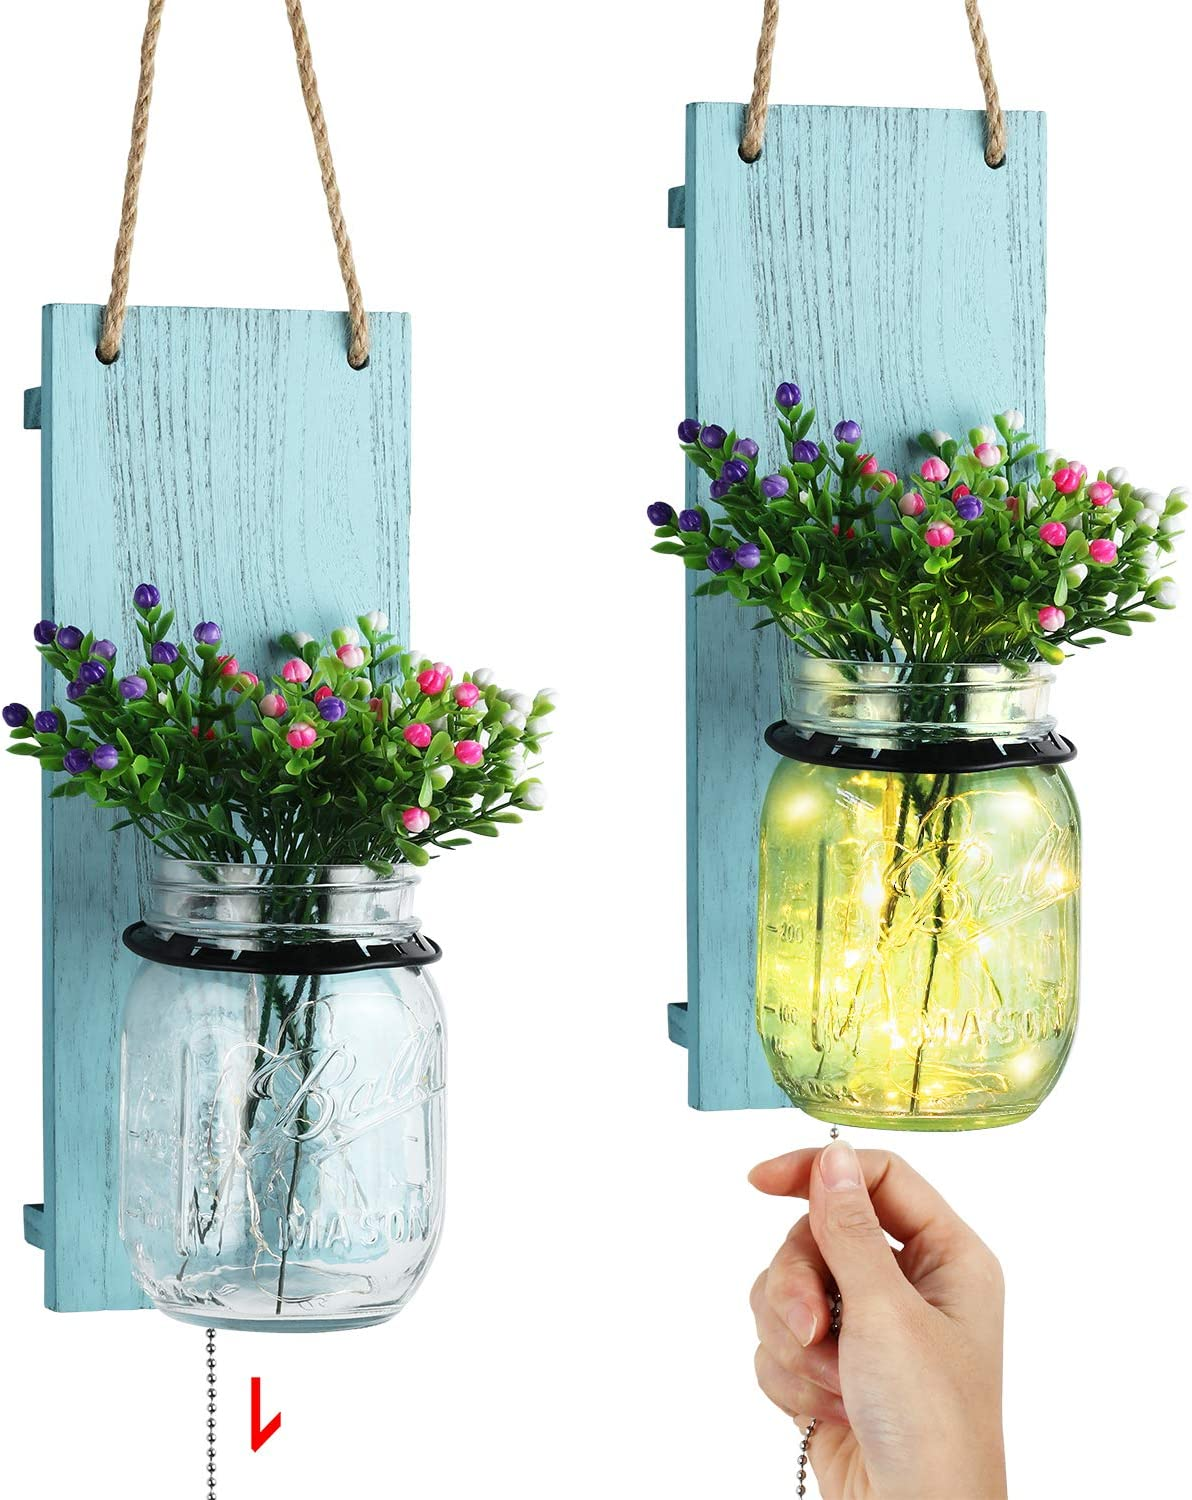 TJ.MOREE Decorative Mason Jar Sconce, Coastal Style Wall Sconce with Pull Chain Switch, Seasonal Interchangeable Colorful Flowers and LED Strip Lights Design for Farmhouse Home Decor Set of 2 - Blue